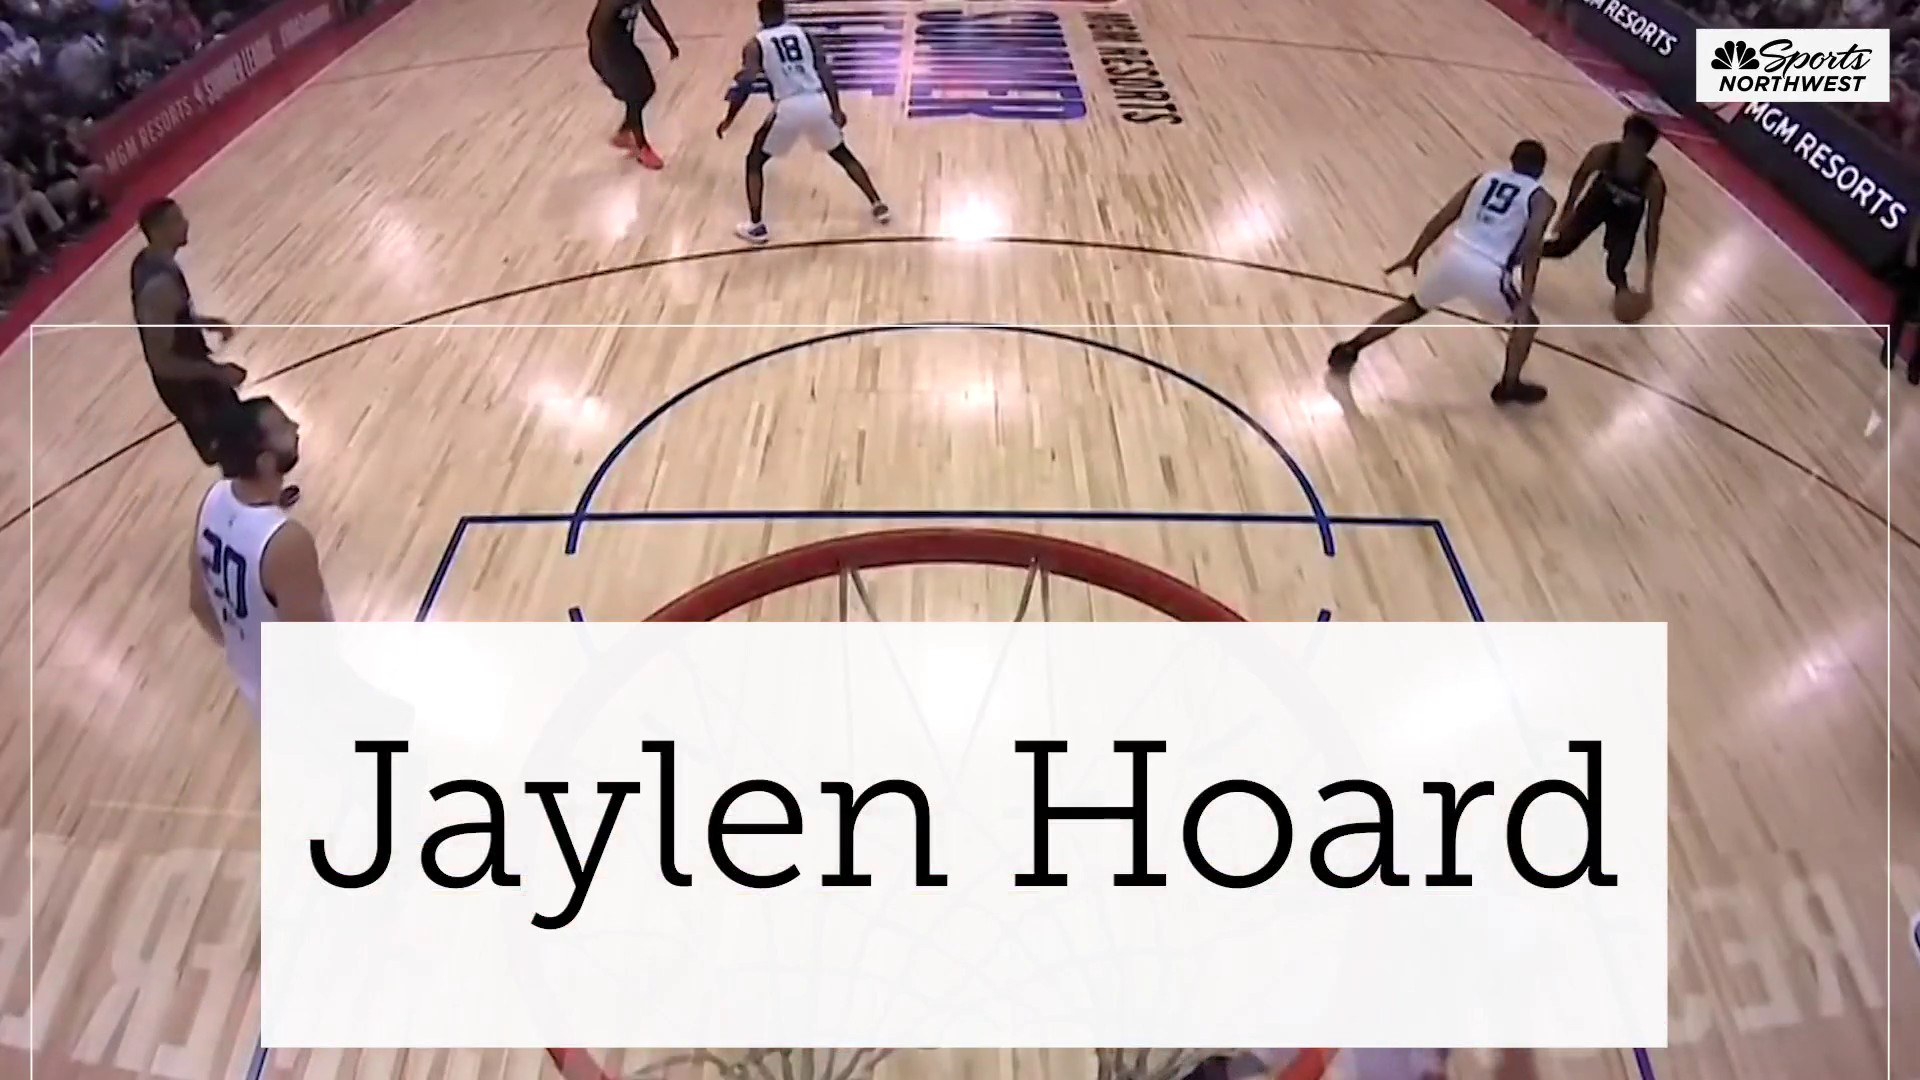 Coach Moran: Jaylen Hoard has proved he can play at this level